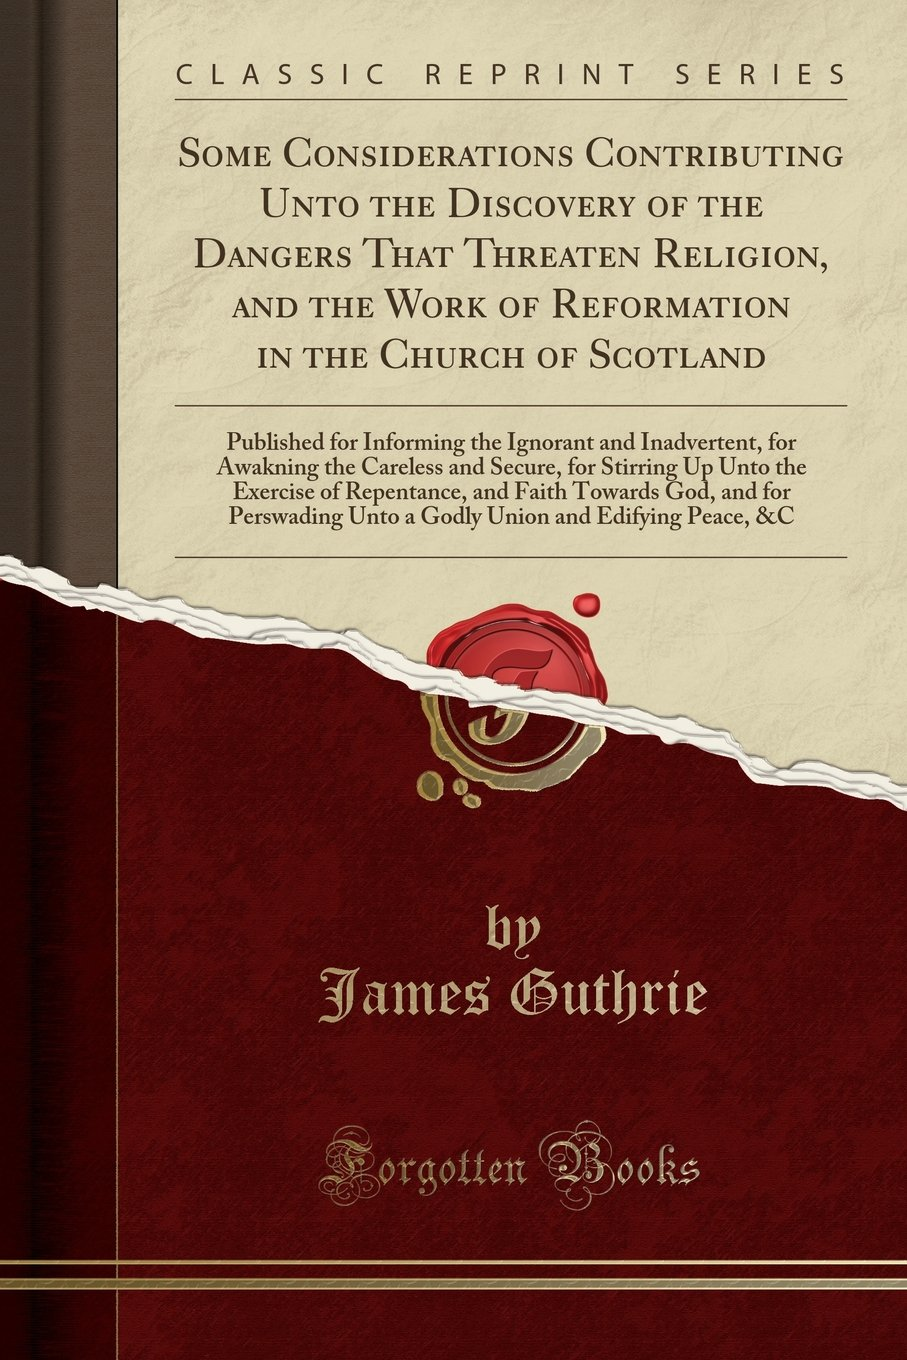 Download Some Considerations Contributing Unto the Discovery of the Dangers That Threaten Religion, and the Work of Reformation in the Church of Scotland: ... the Careless and Secure, for Stirring Up U PDF